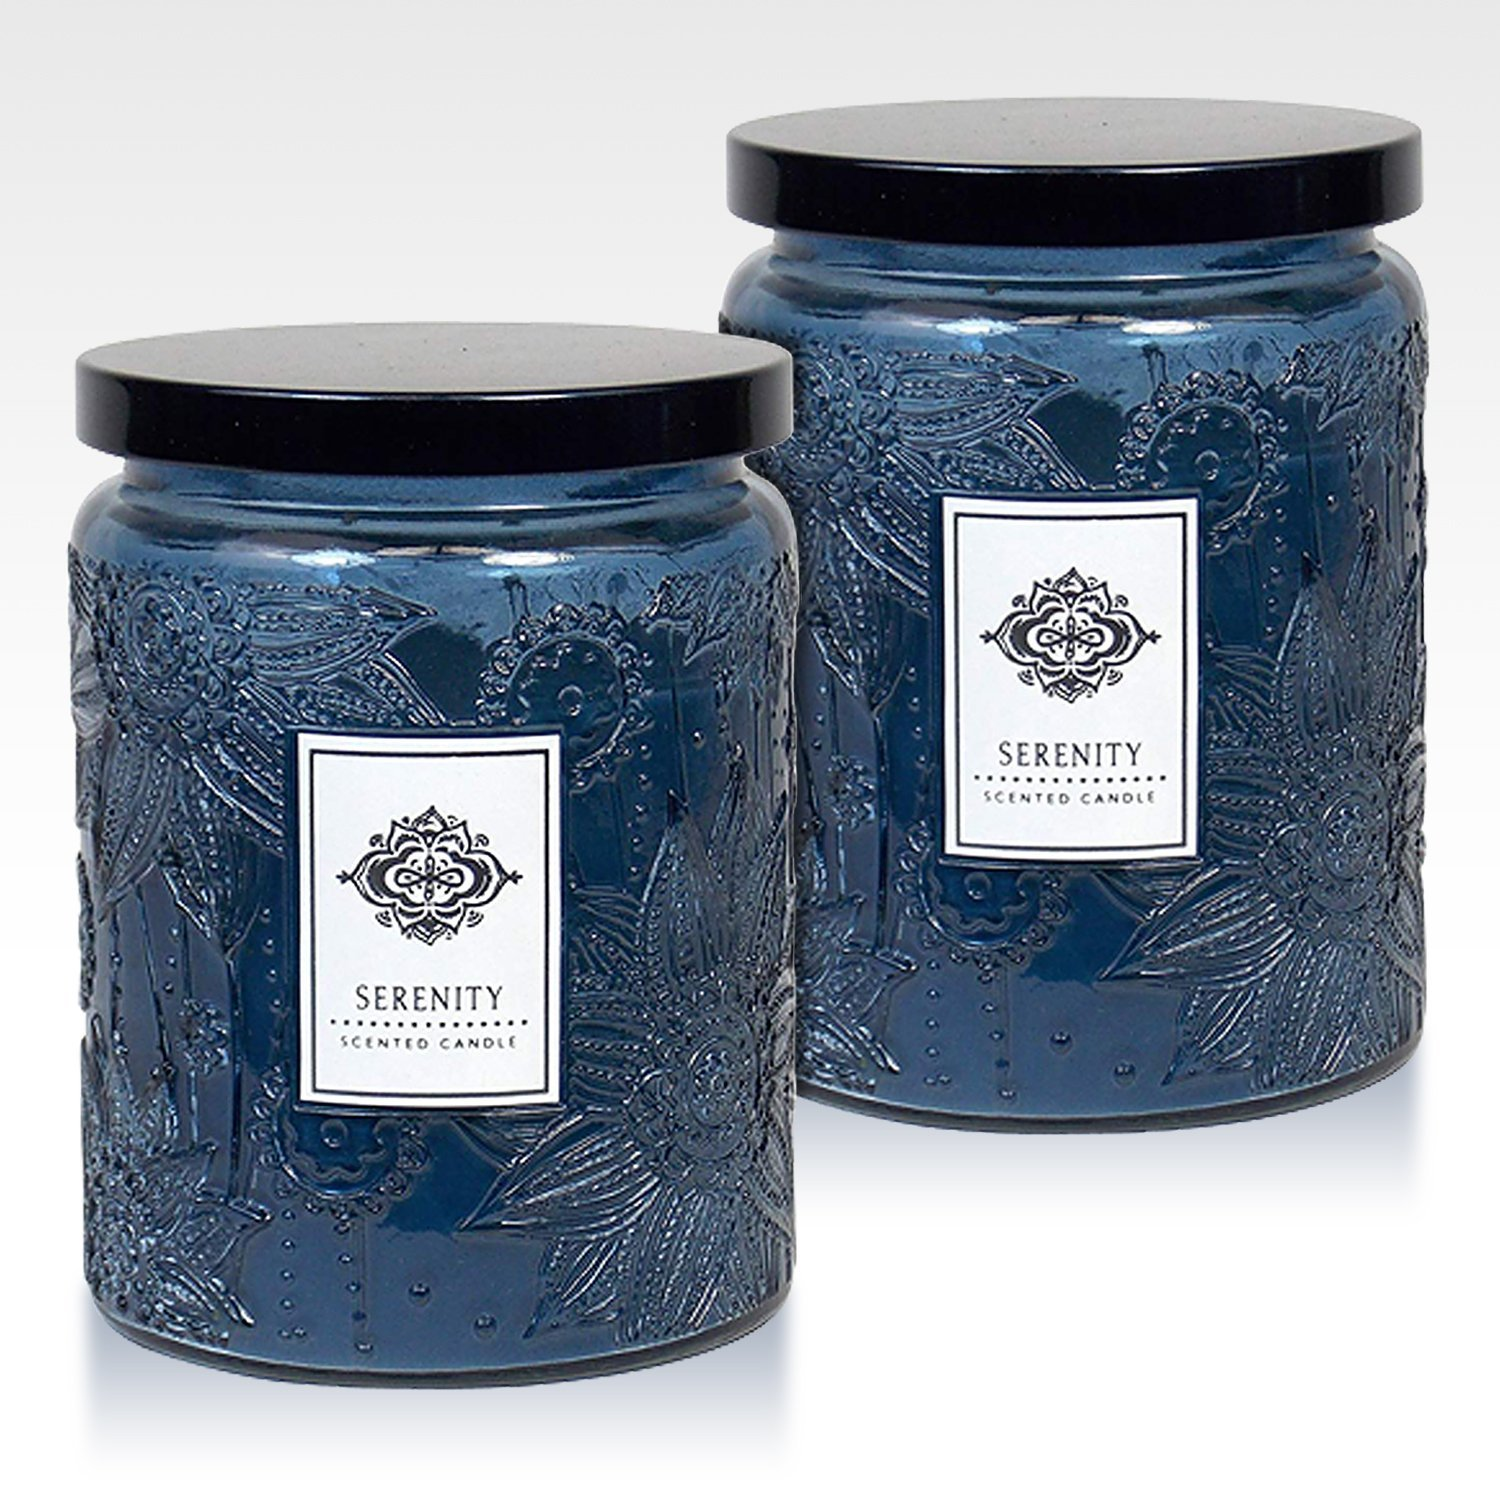 Dynamic Collections Aromatherapy Scented Candles - Great for Minimalistic Home Decor, Stress Relief, and Gift Set of Two 16 Ounce Mason Jar Candles (Serenity)